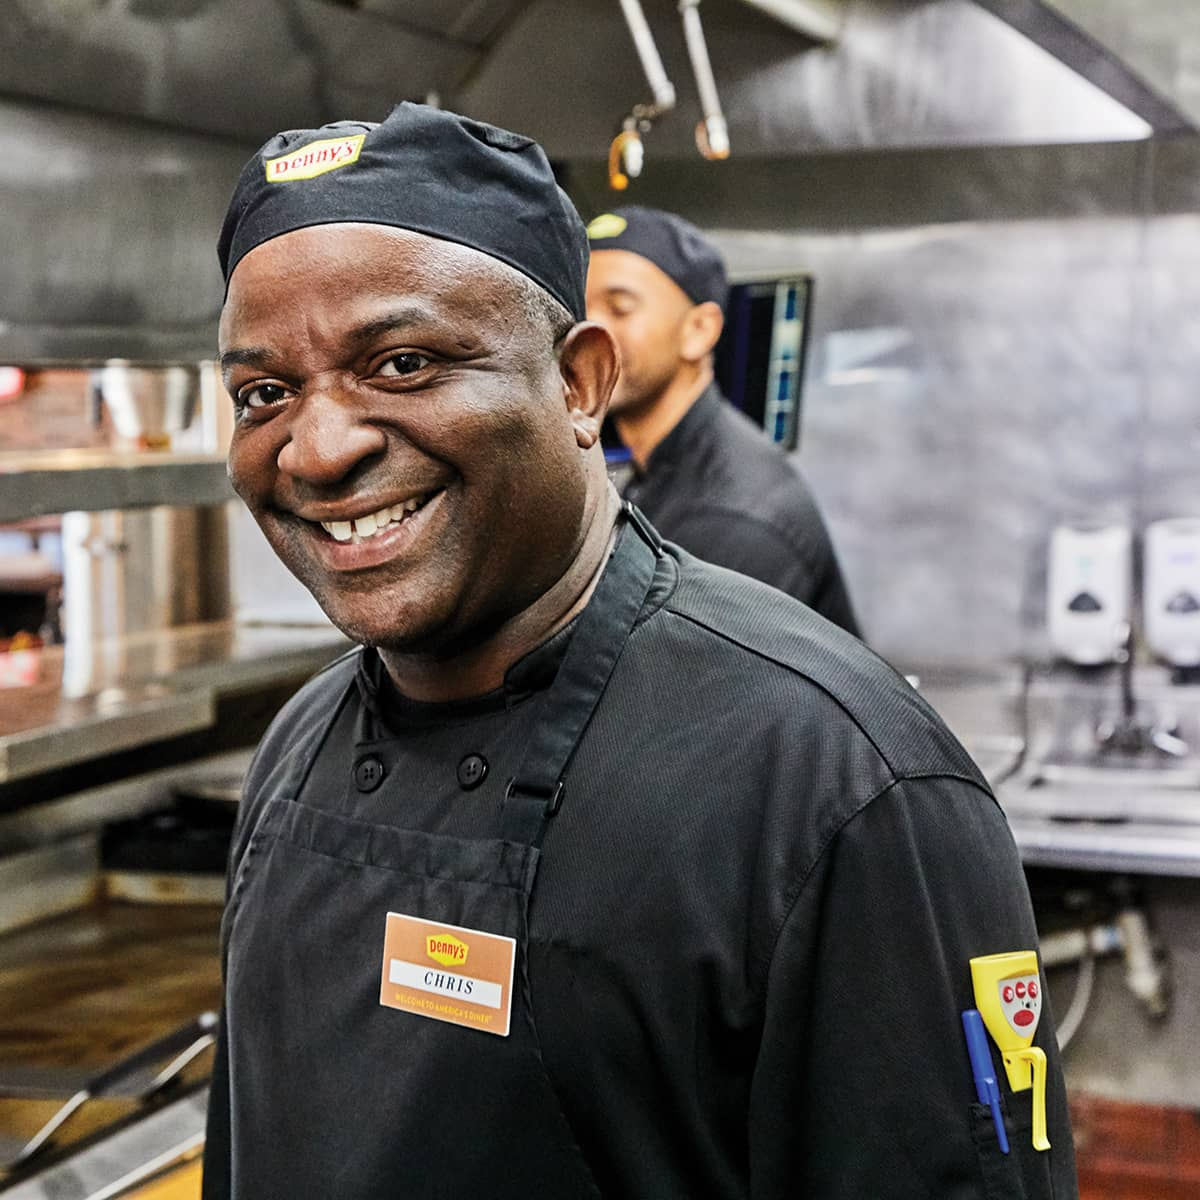 Smiling Denny's Chef